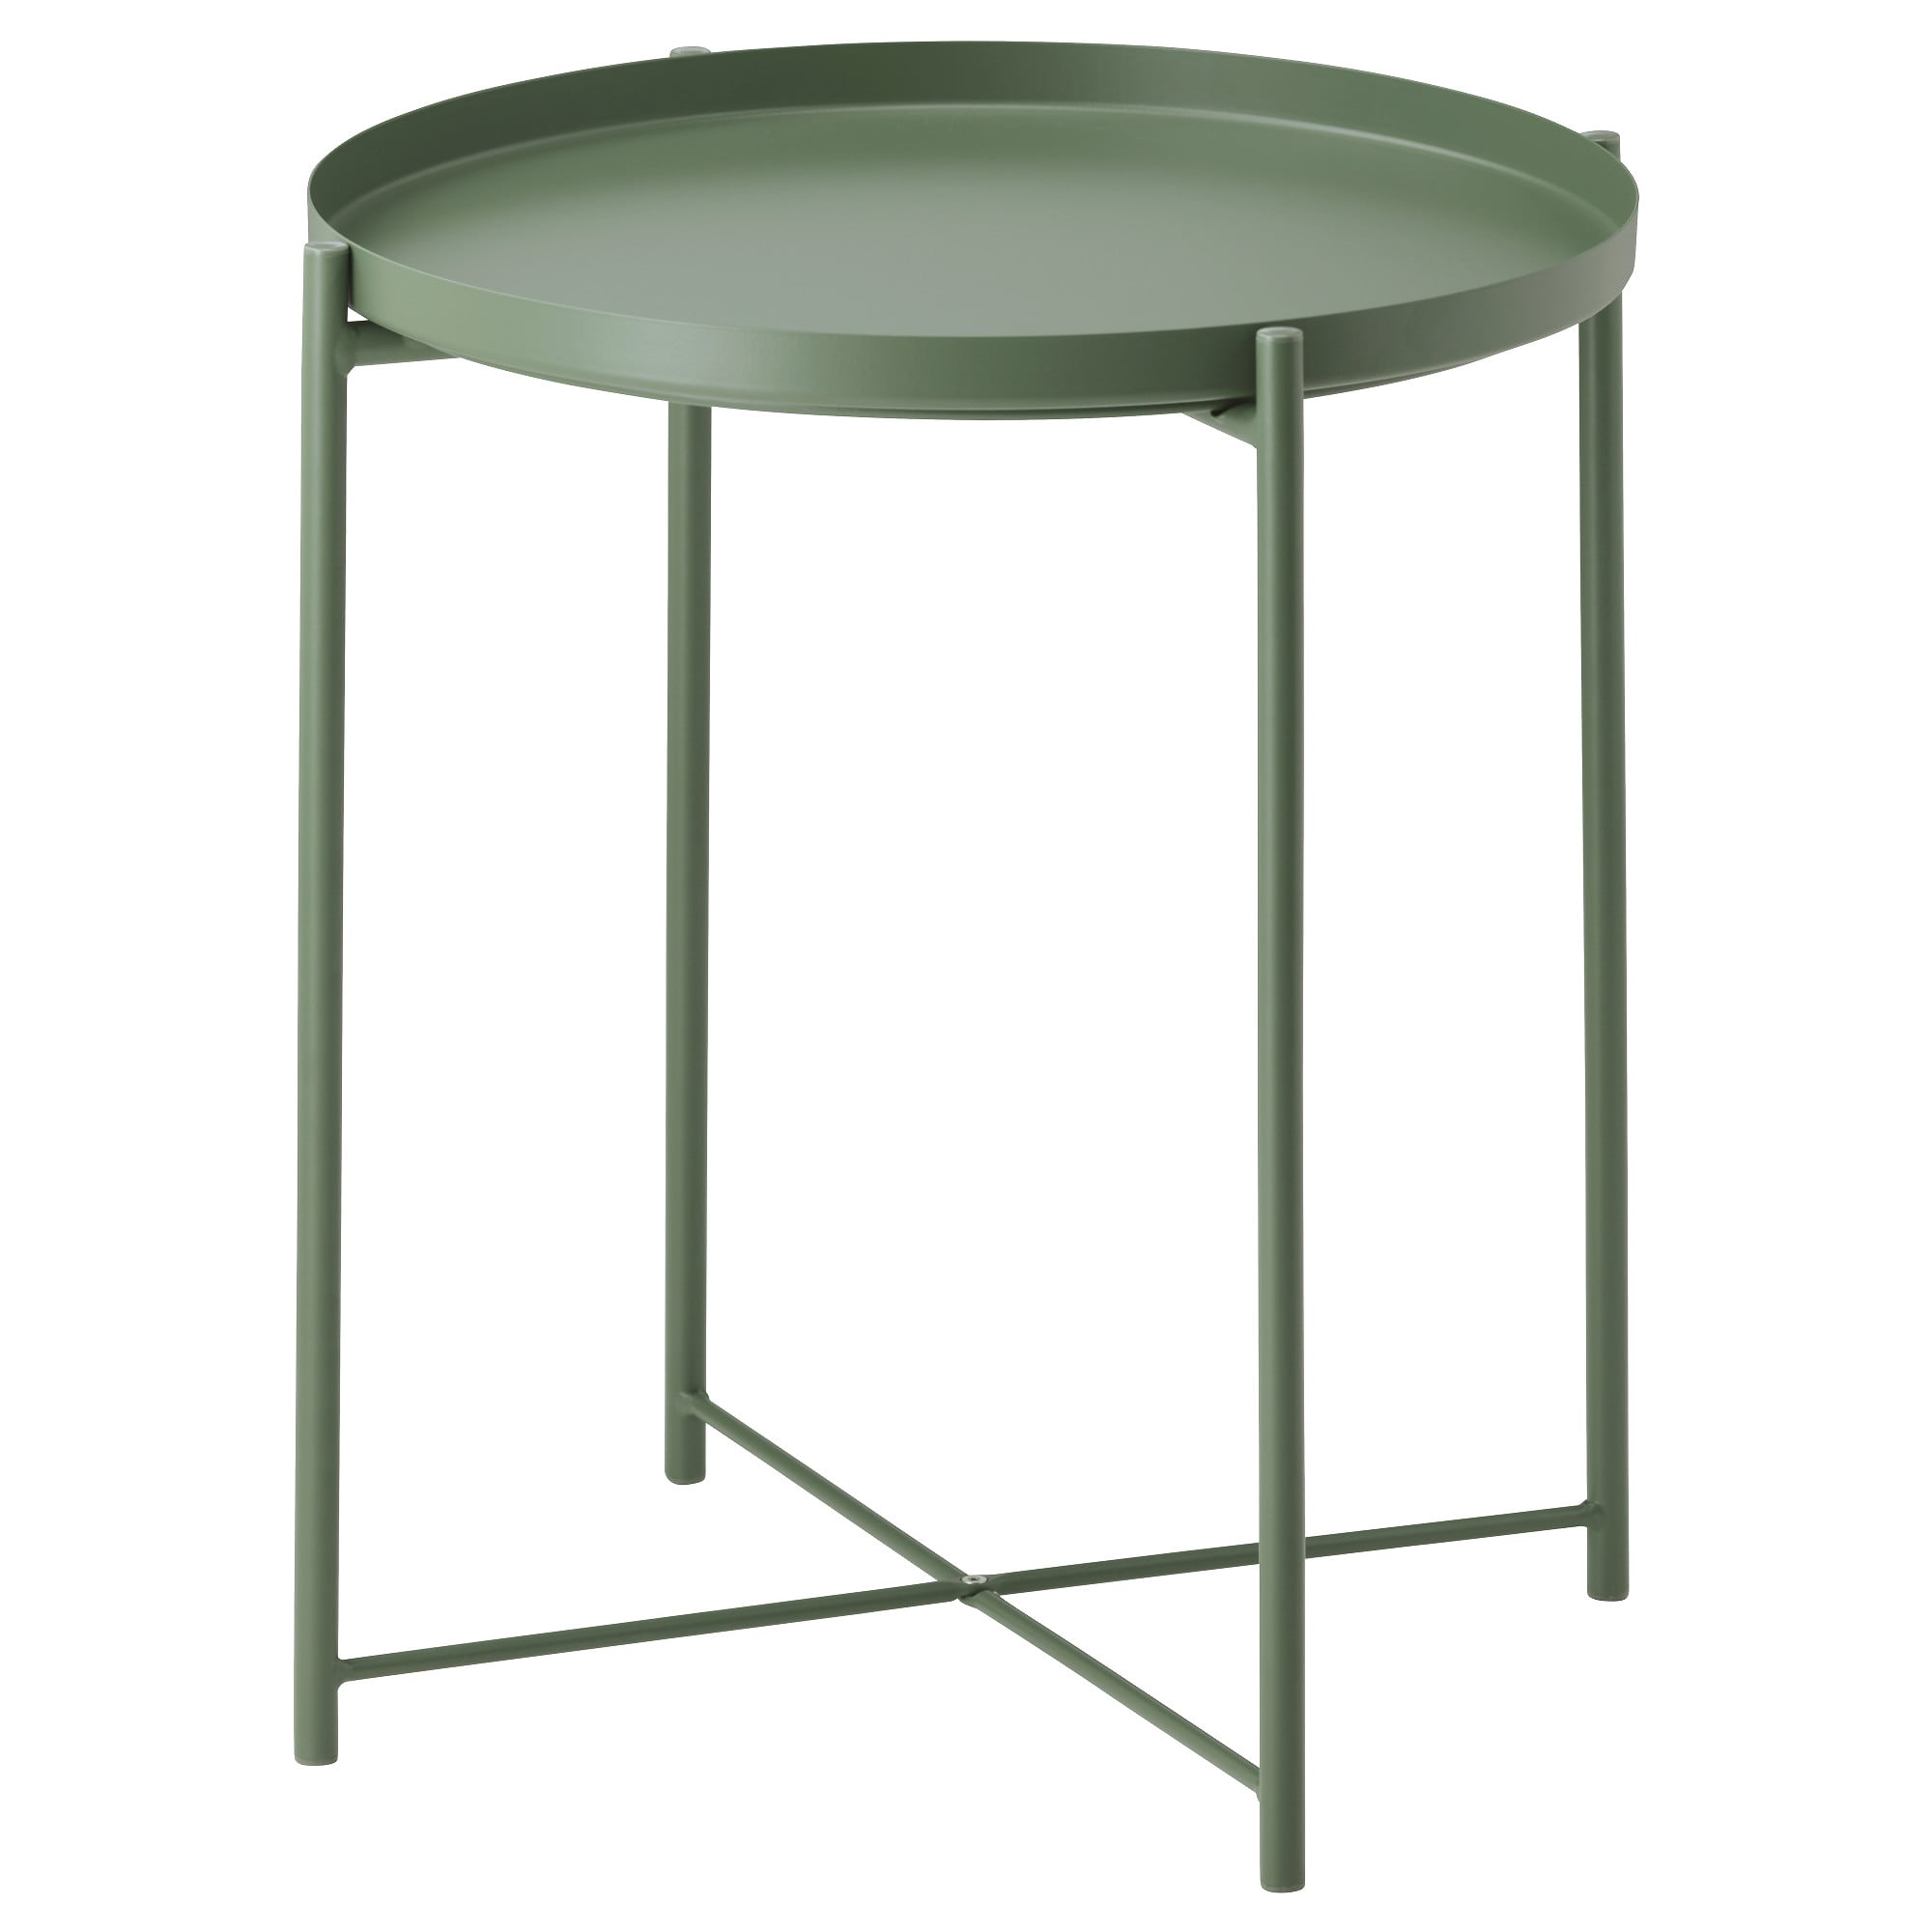 gladom tray table dark green ikea end tables coffee you can use the removable for serving eureka futon blue leather couch chocolate brown rugs white ceramic side extra slim